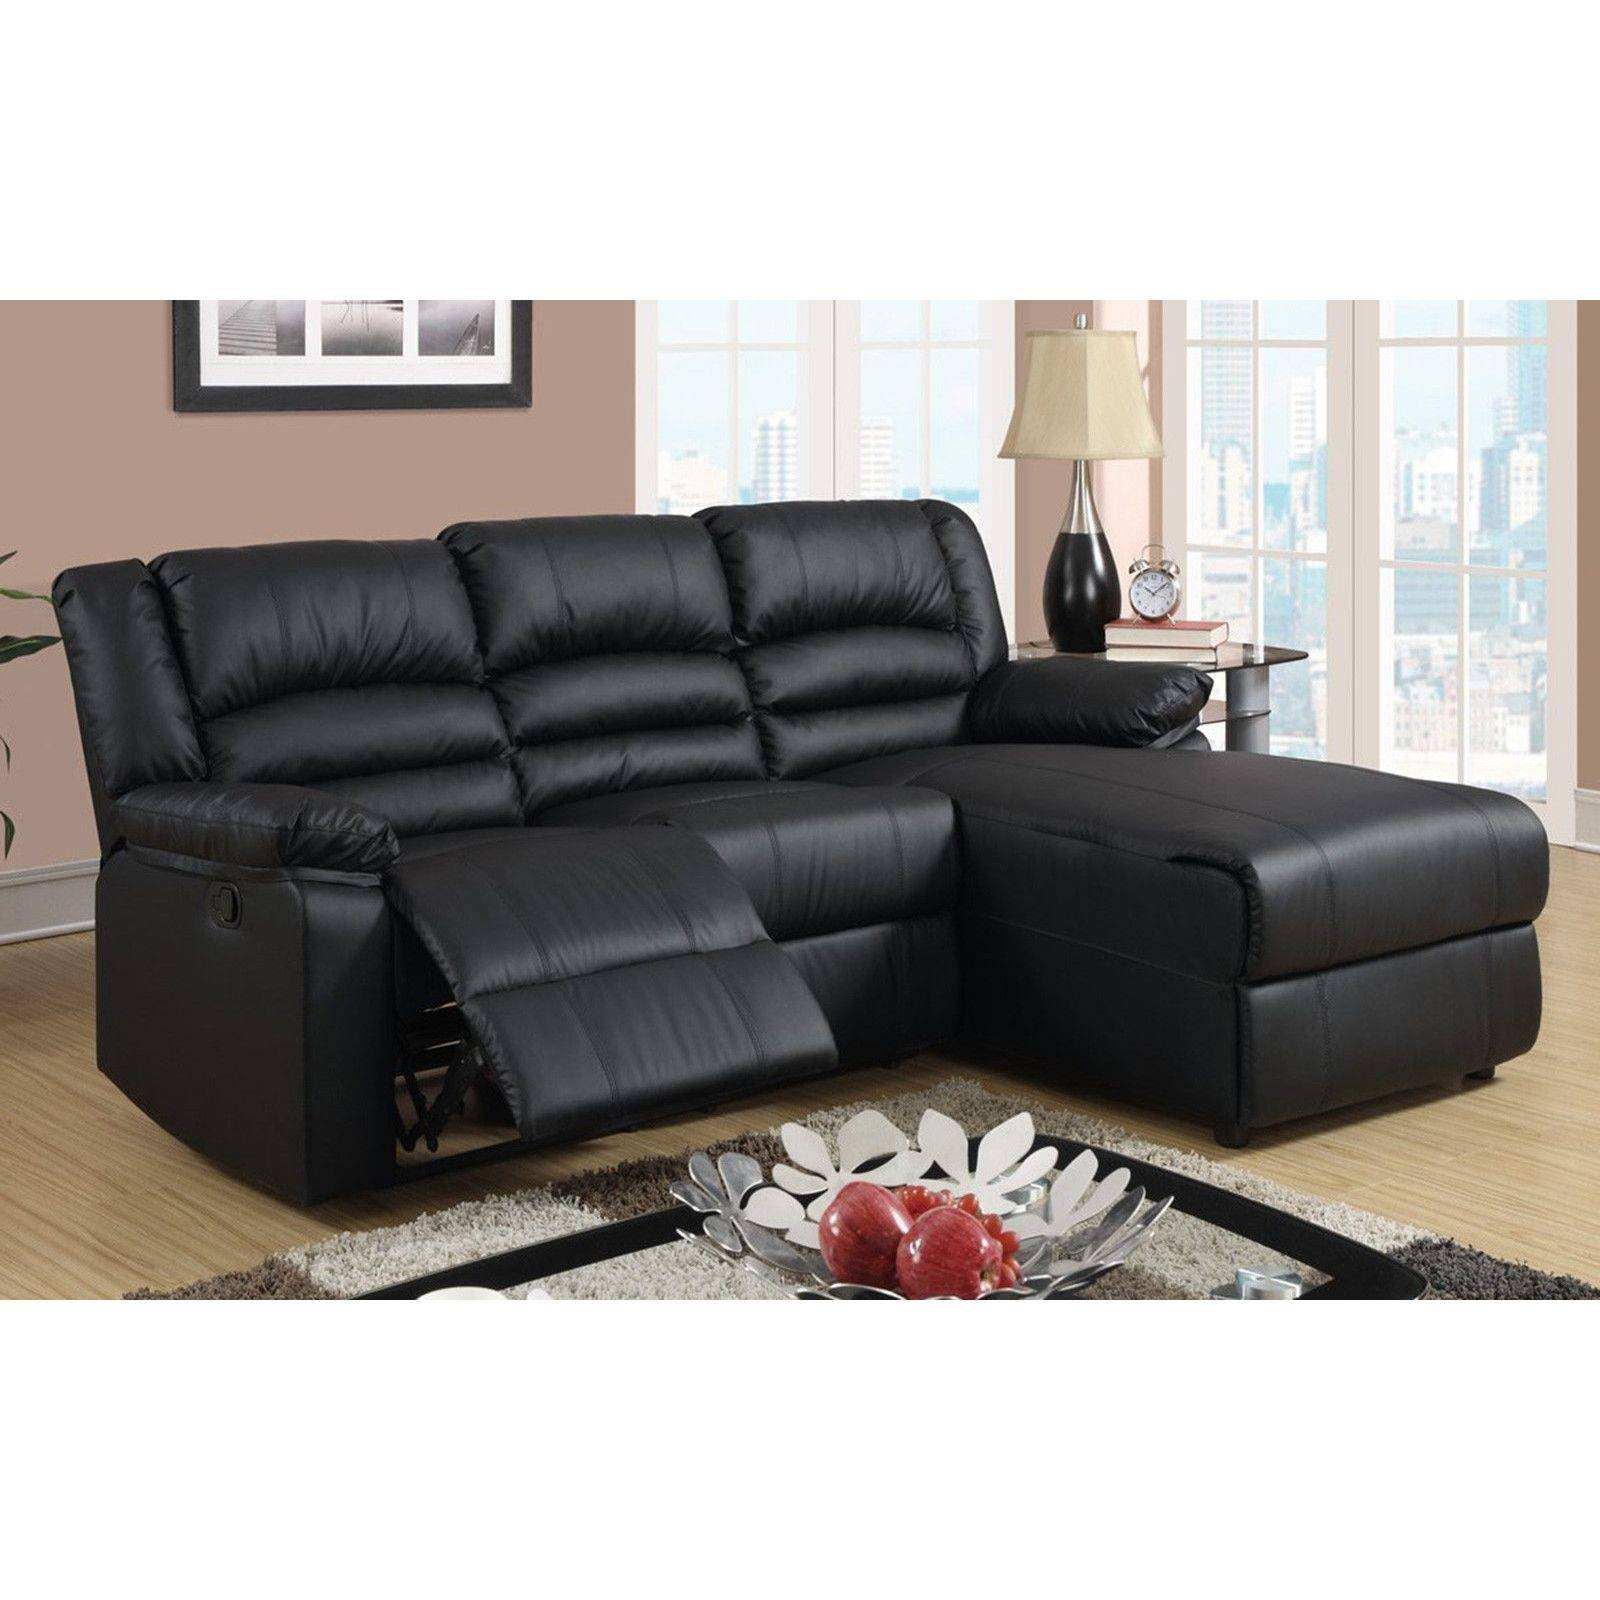 Furniture: Incredible Style Sectional Reclining Sofas For Your regarding Leather L Shaped Sectional Sofas (Image 12 of 30)